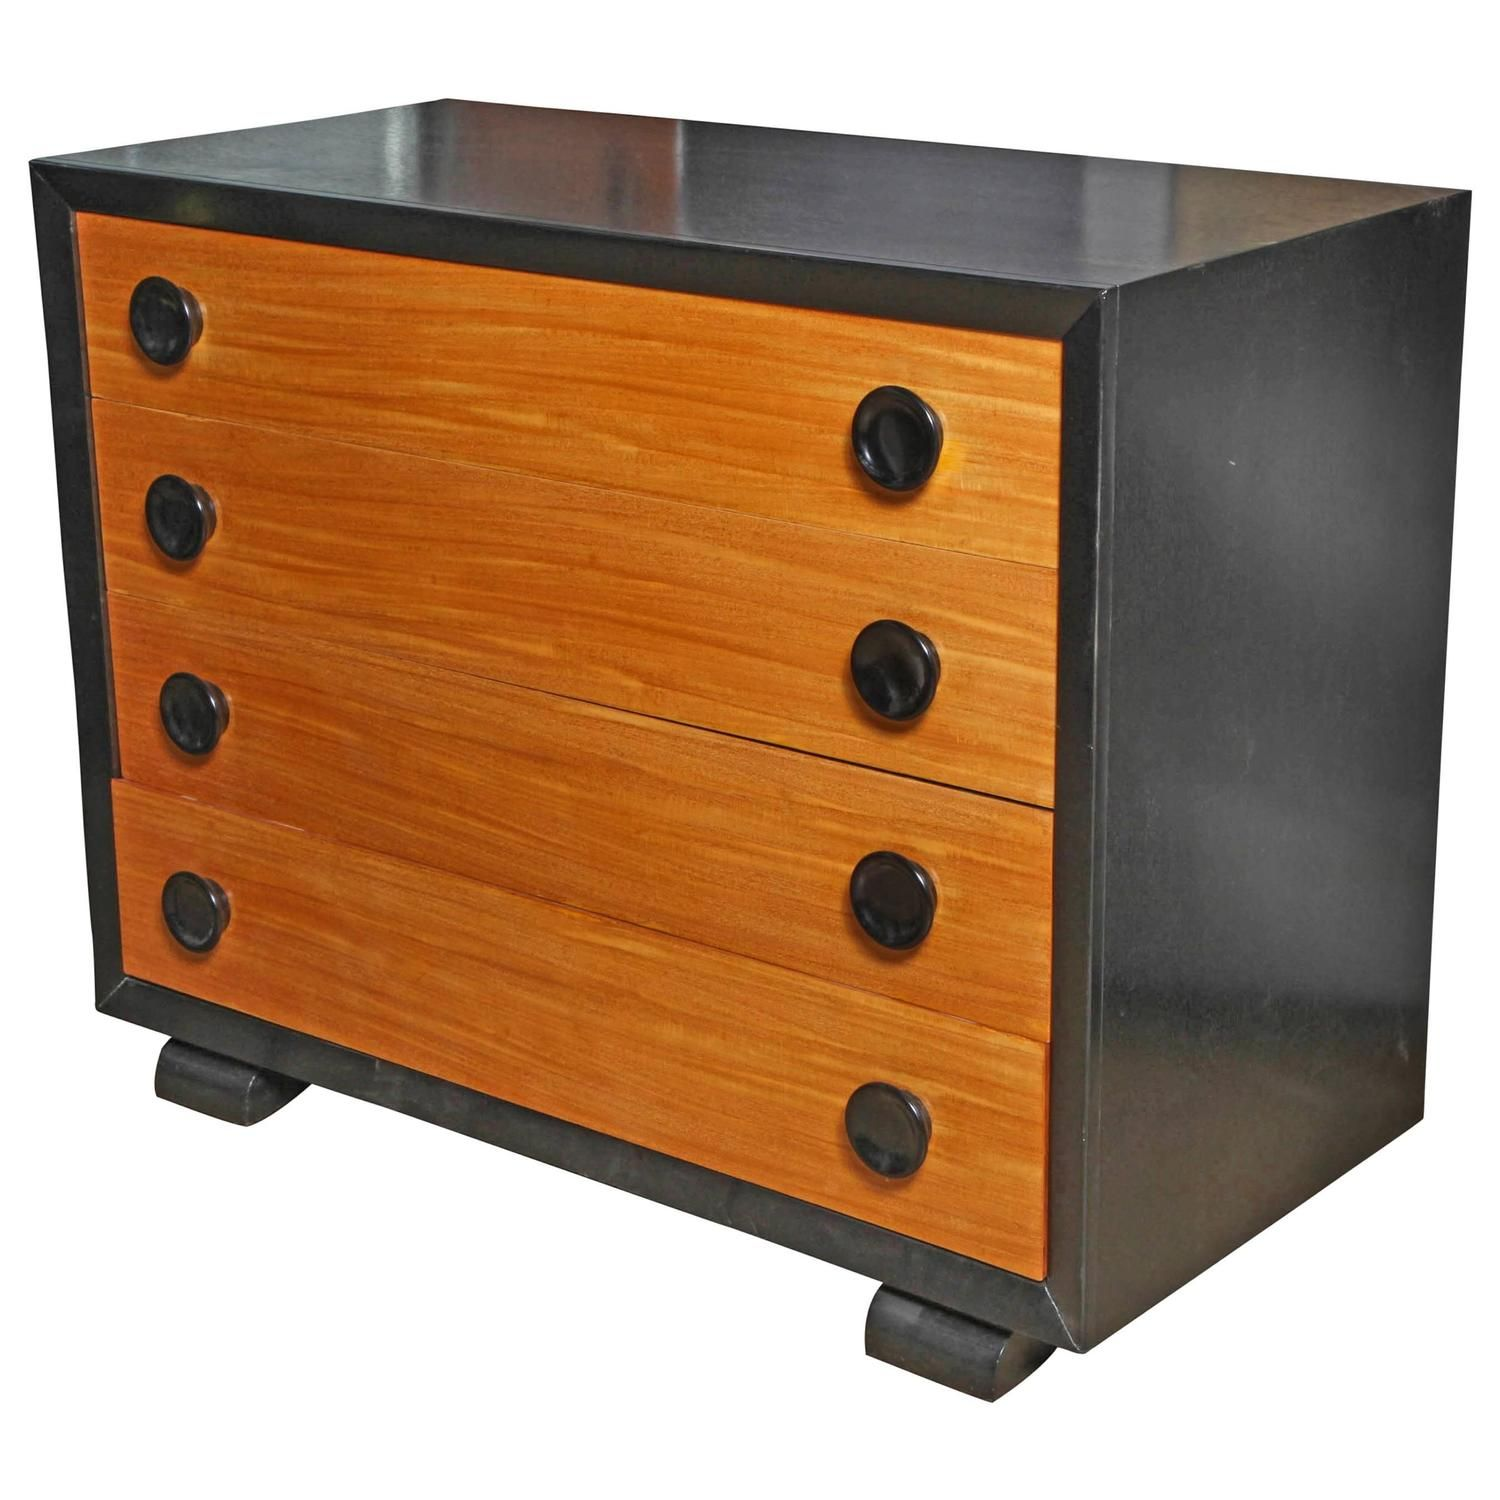 art deco era furniture. Low Americraft Art Deco Style Mahogany Dresser Era Furniture I